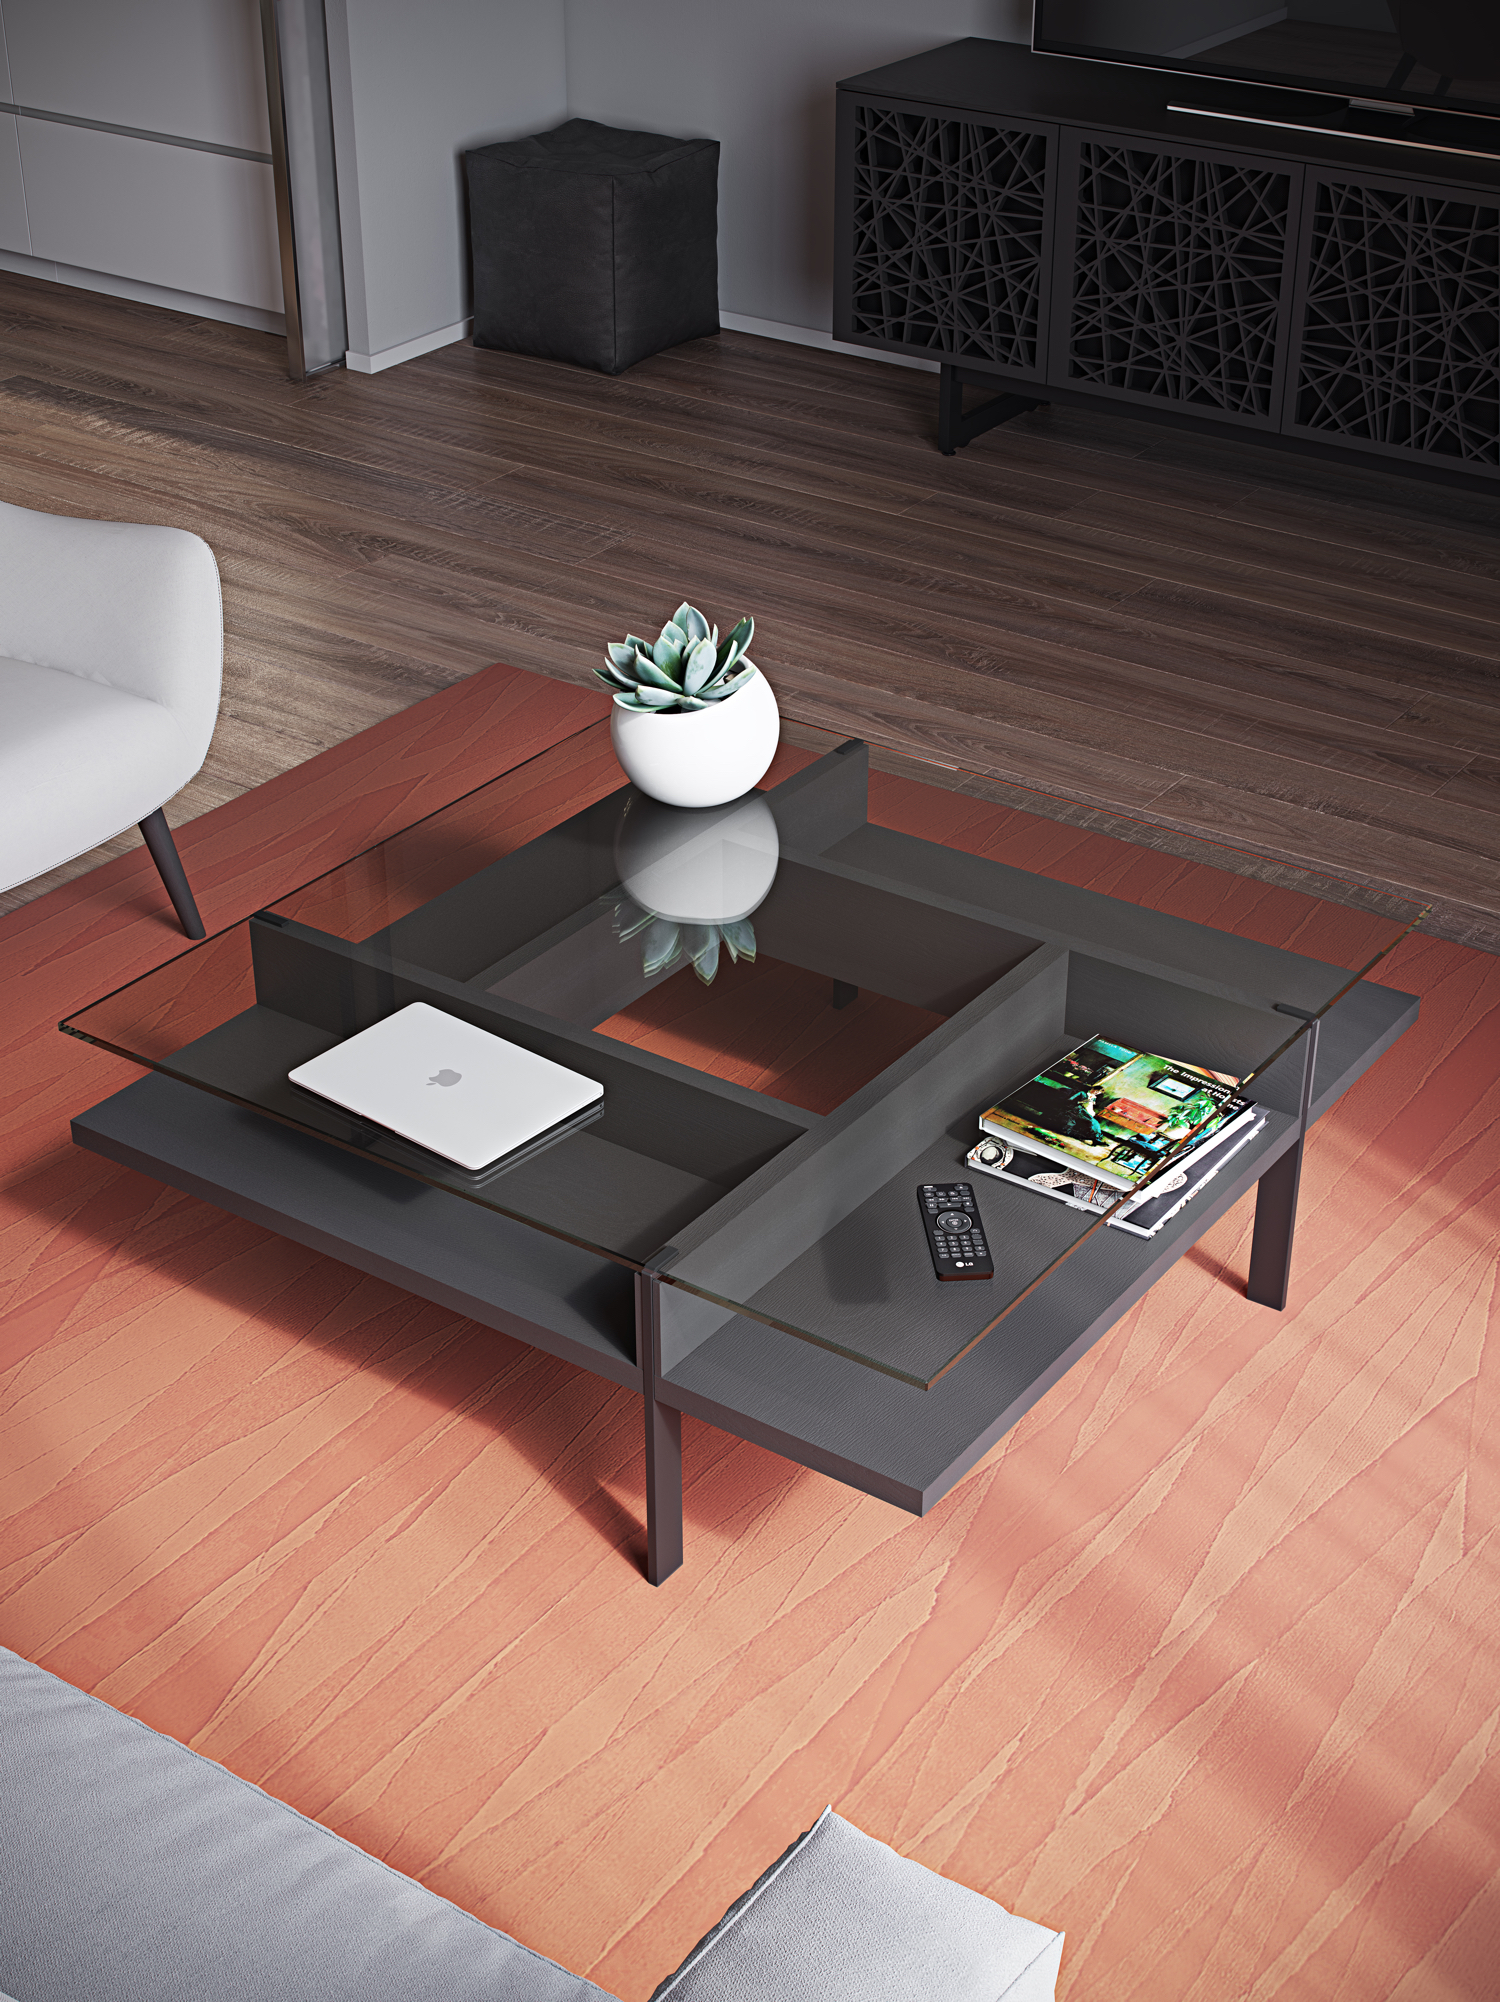 Terrace_Tables_Terrace_Square_Coffee_Table_Lifestyle_Image_VP_HR_View01